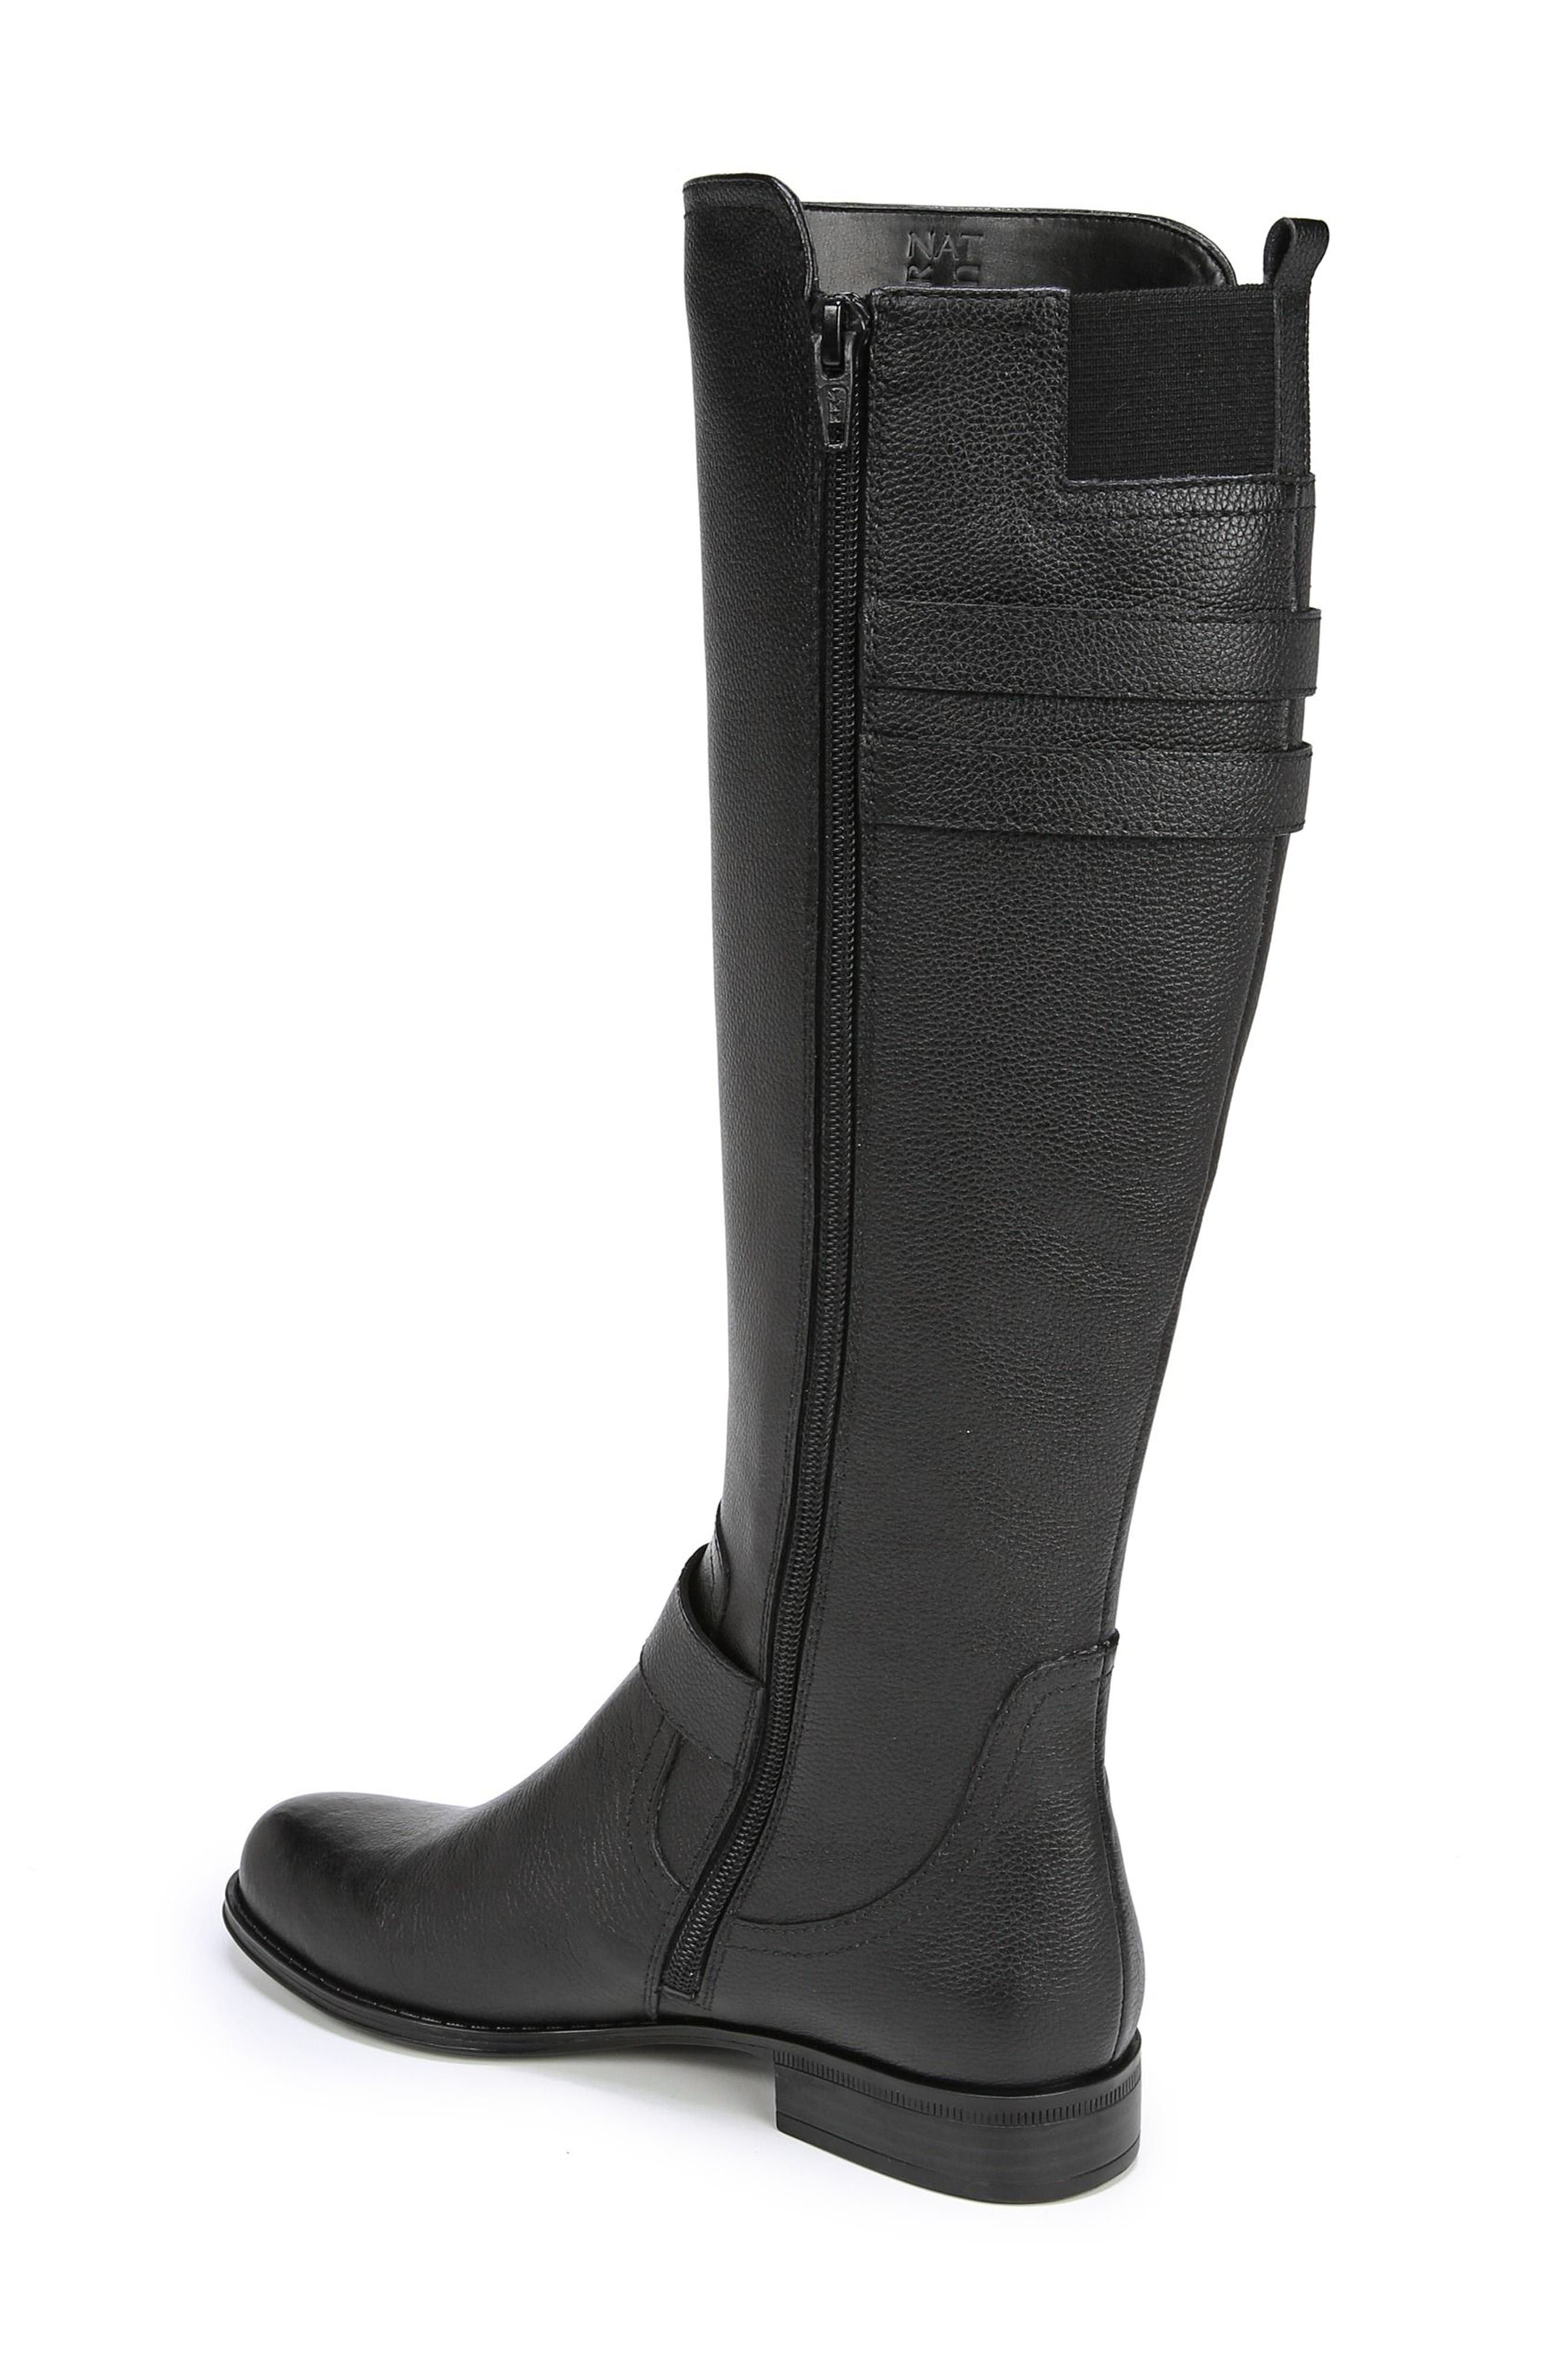 Jessie Knee High Riding Boot,                             Alternate thumbnail 2, color,                             BLACK LEATHER